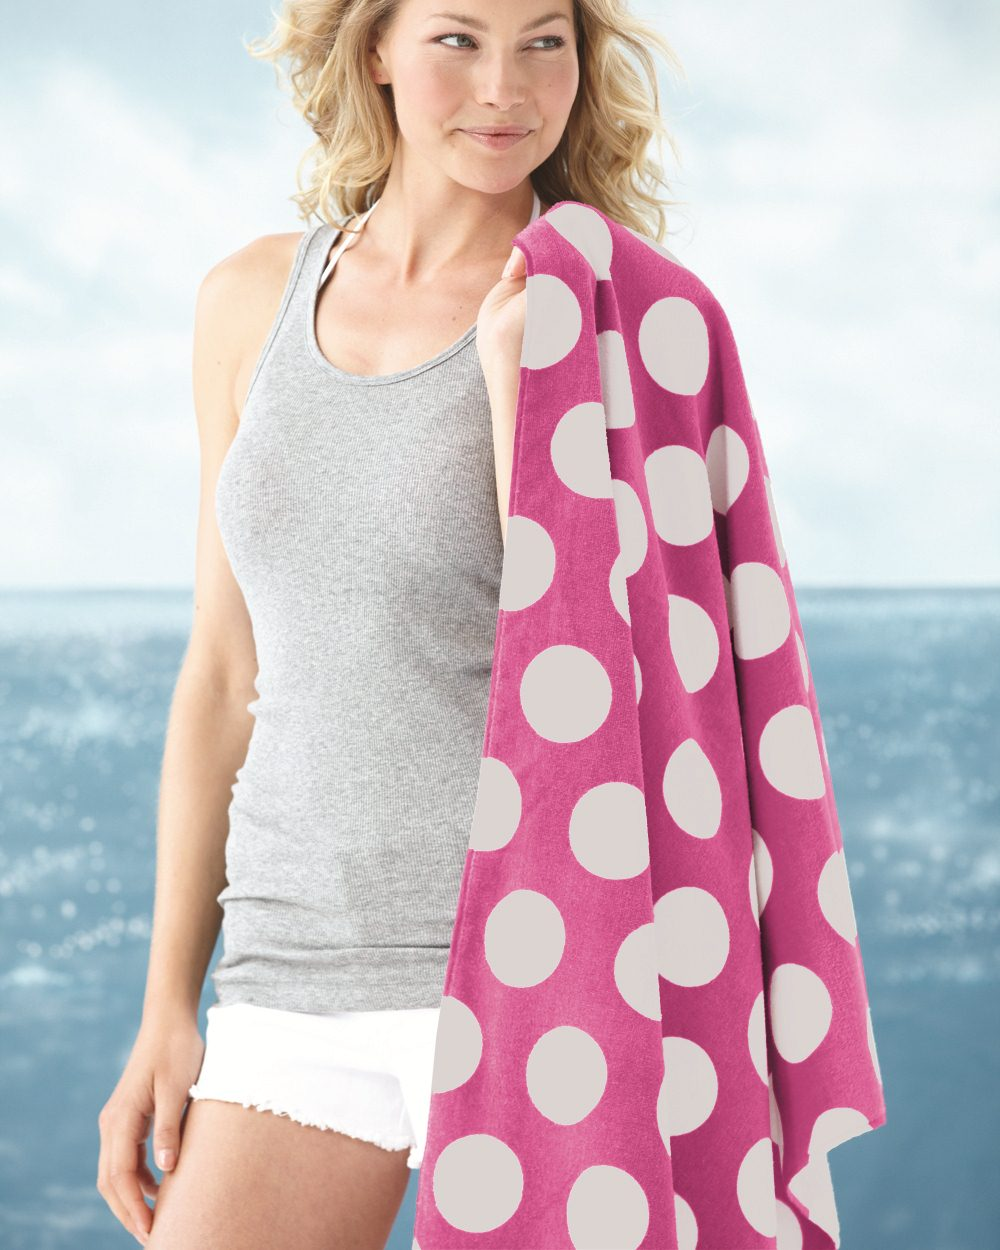 Carmel Towel Company 3060P - Polka Dot Velour Beach ...